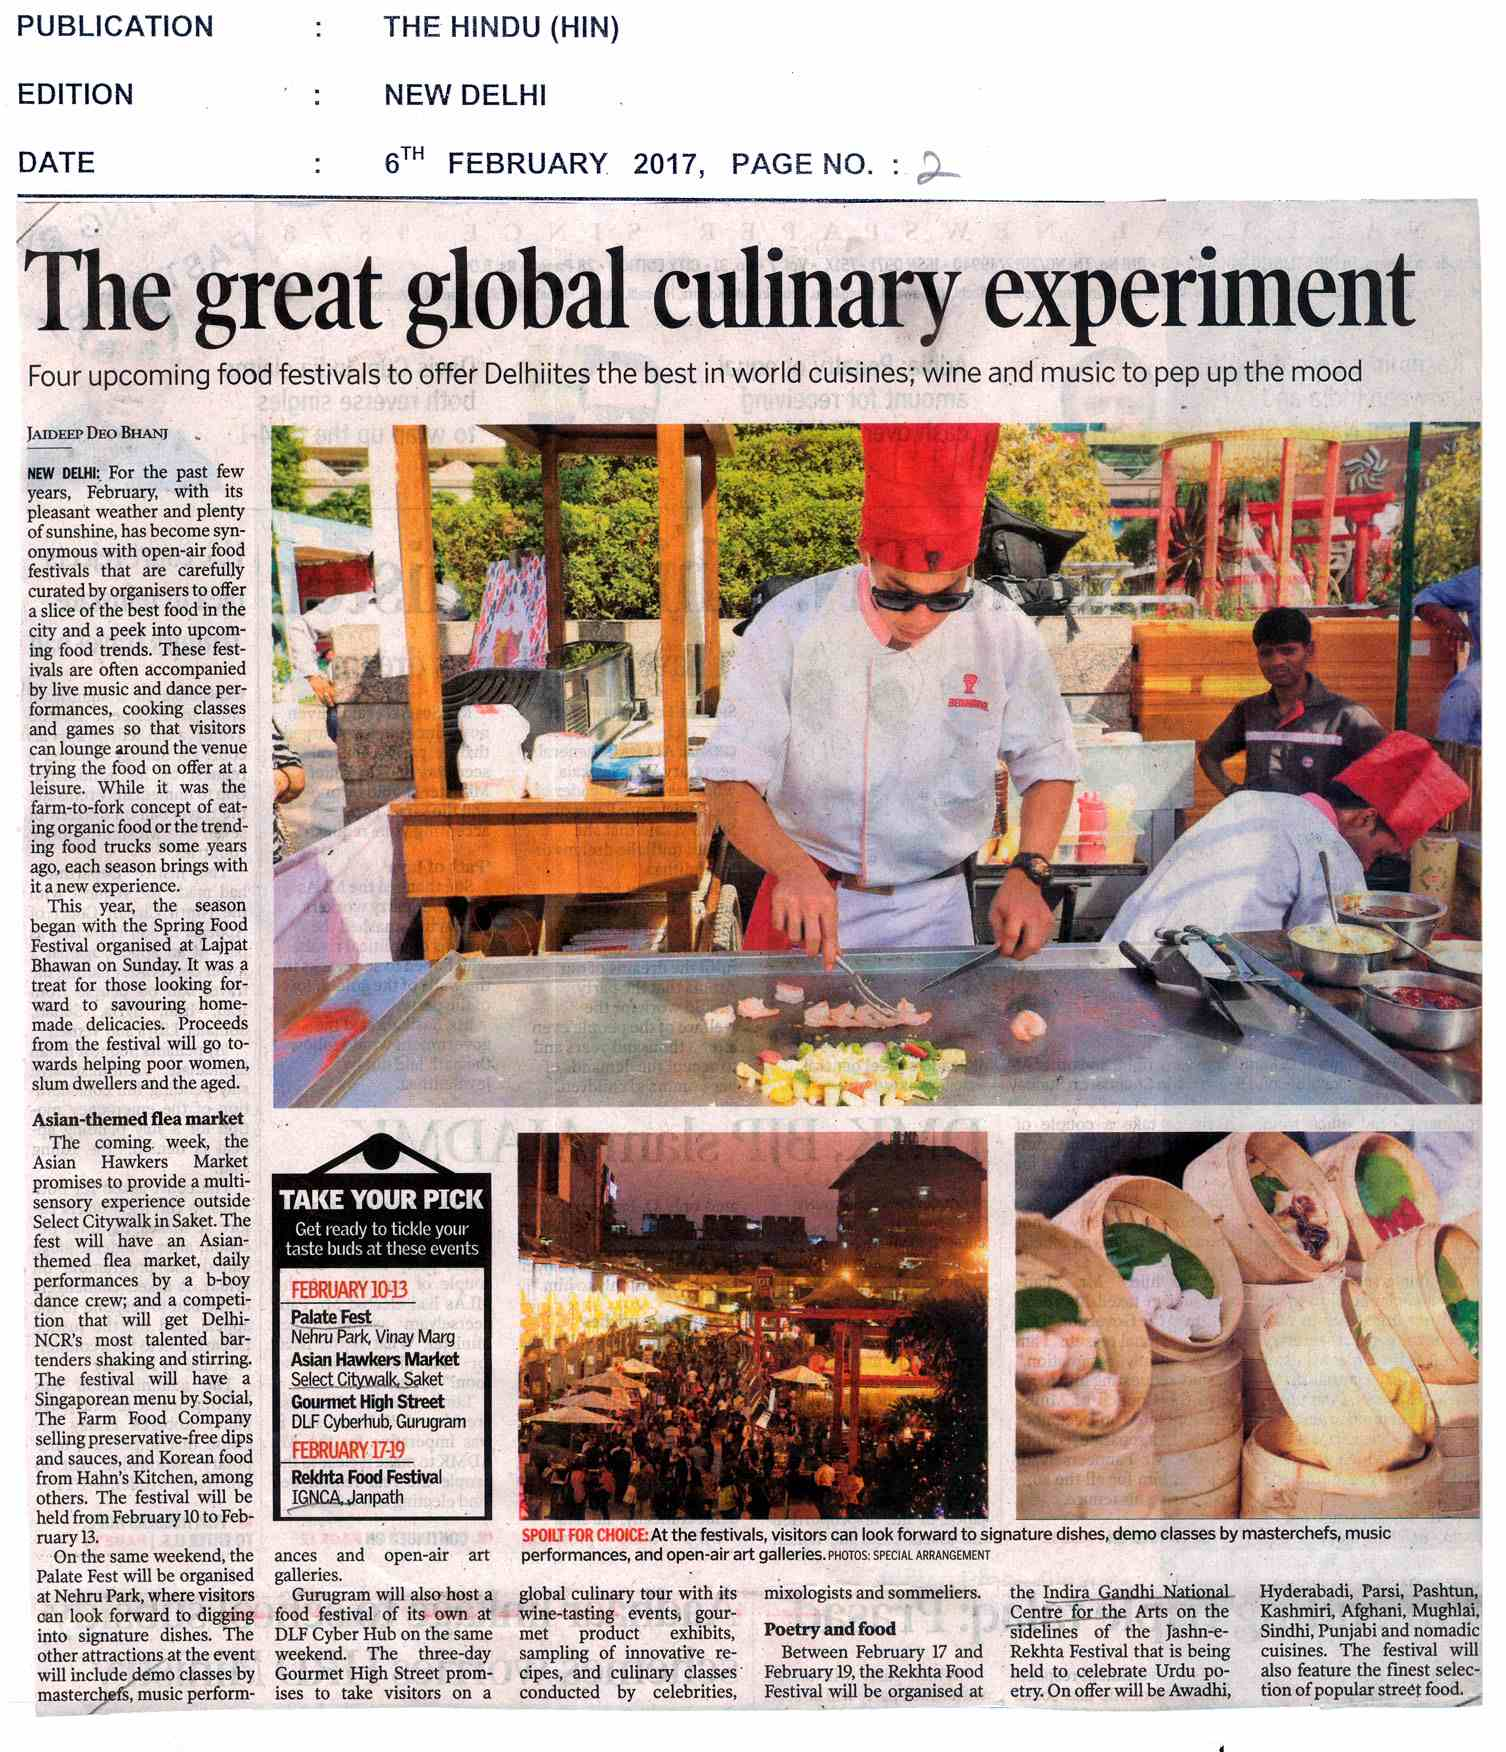 The Great Global Culinary Experiment